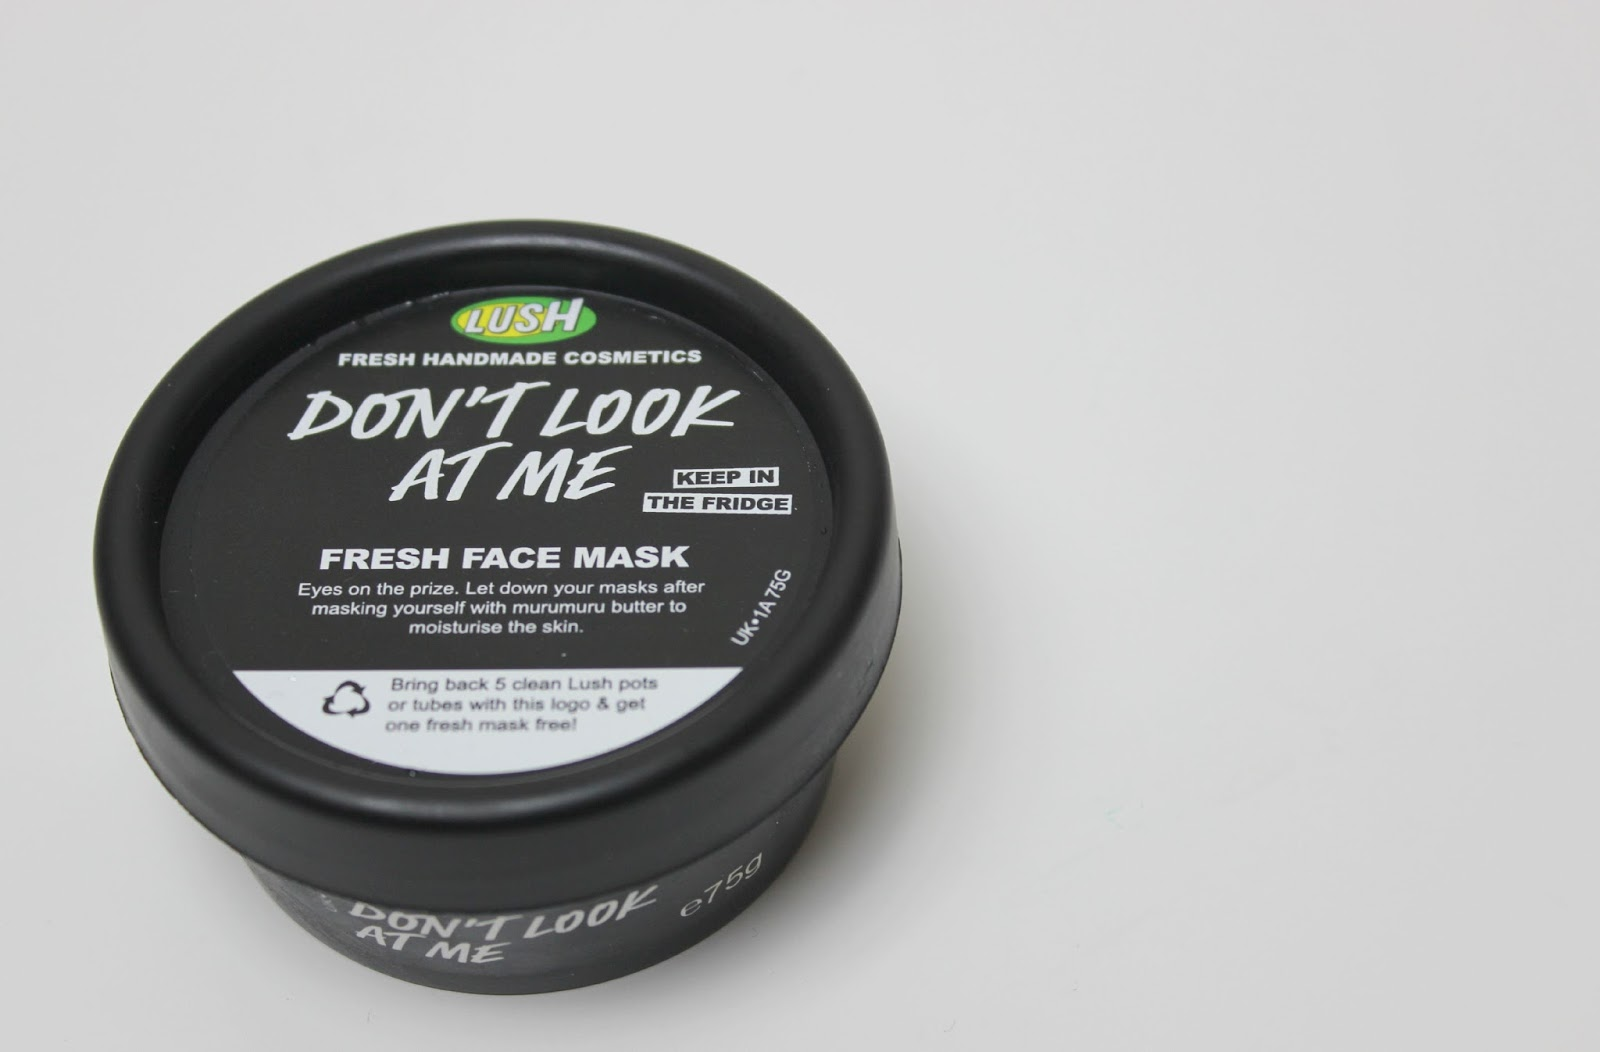 Dont look at me lush face mask review - Lush Don T Look At Me Fresh Face Mask